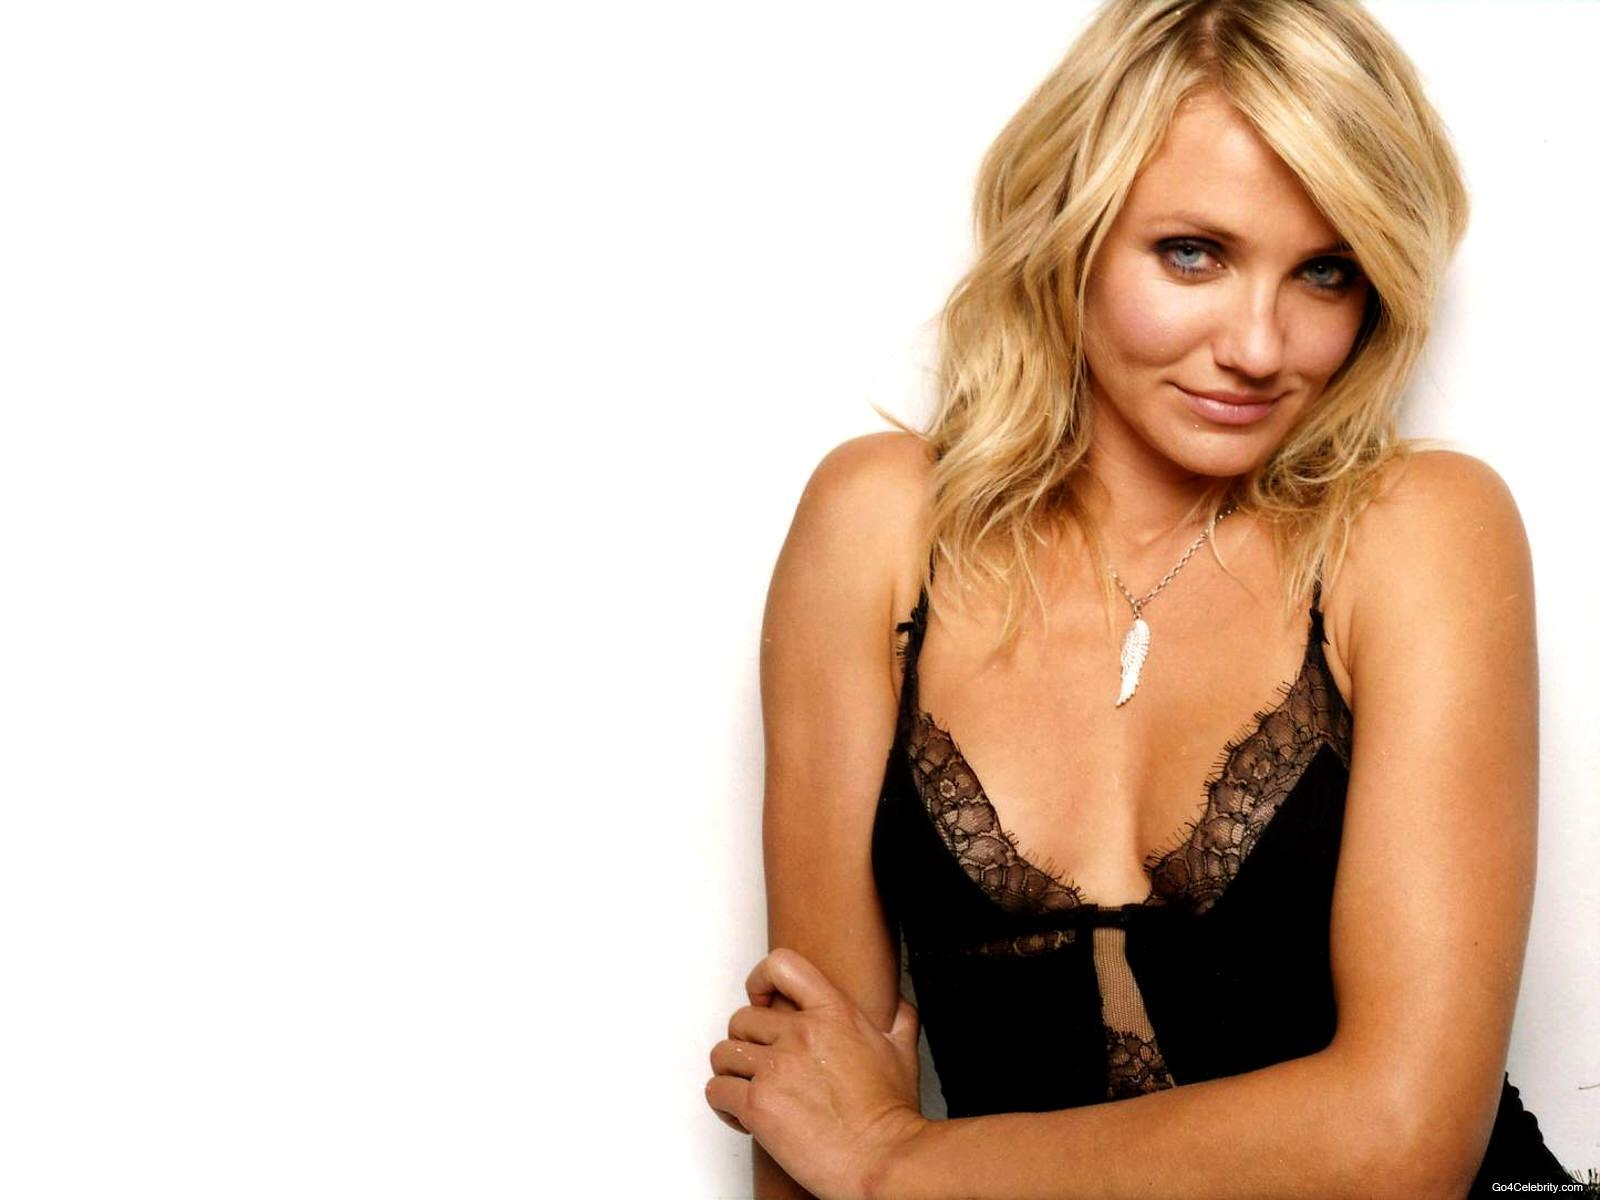 Cameron Diaz u0026quot;Really Wants a Babyu0026quot; With New Husband Benji Madden! - Closer Weekly